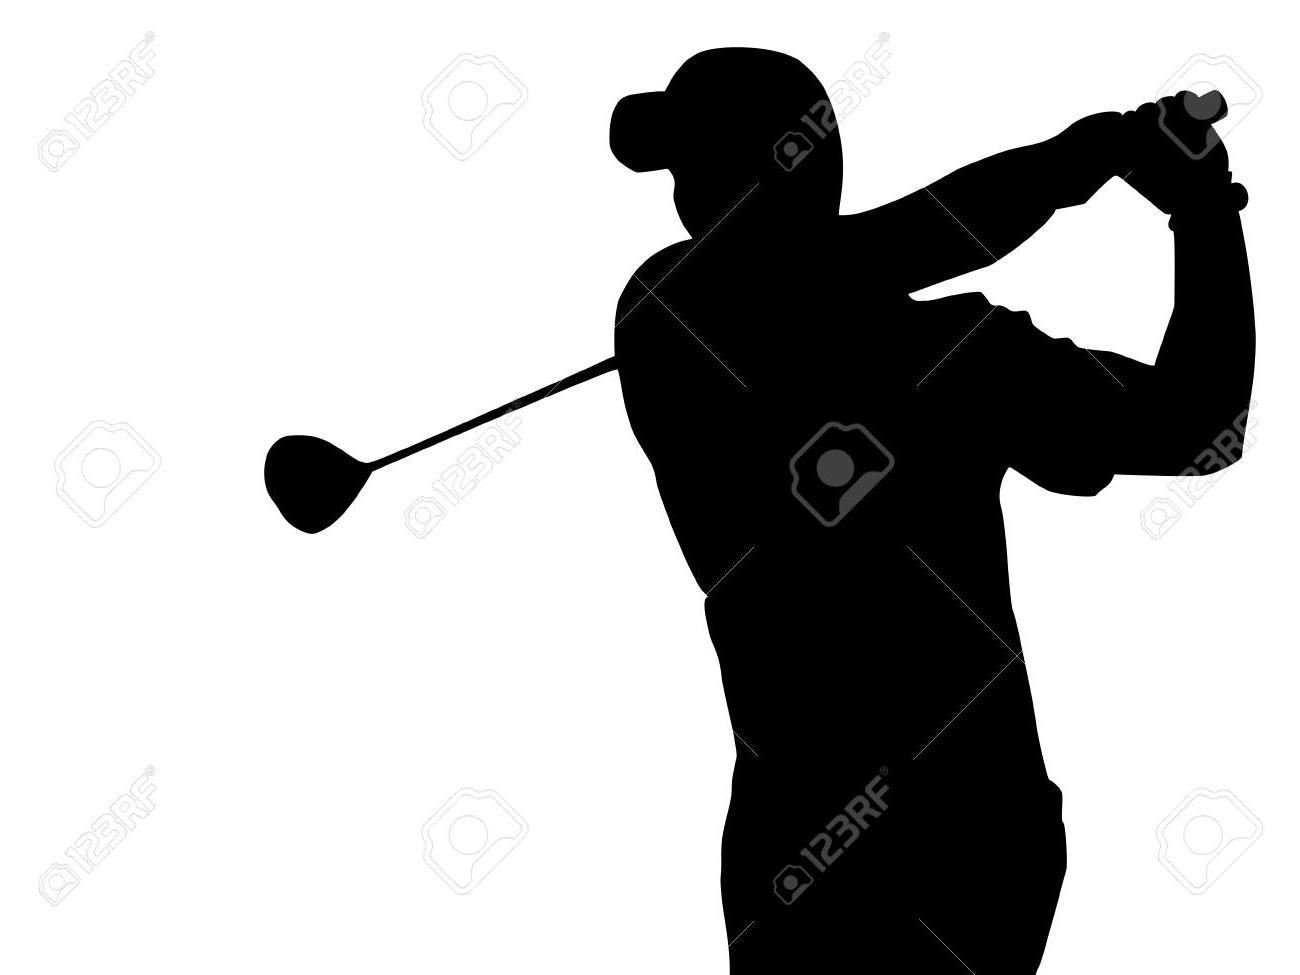 1300x975 Interesting Golfer Silhouette Vector Free For Use Golf Player